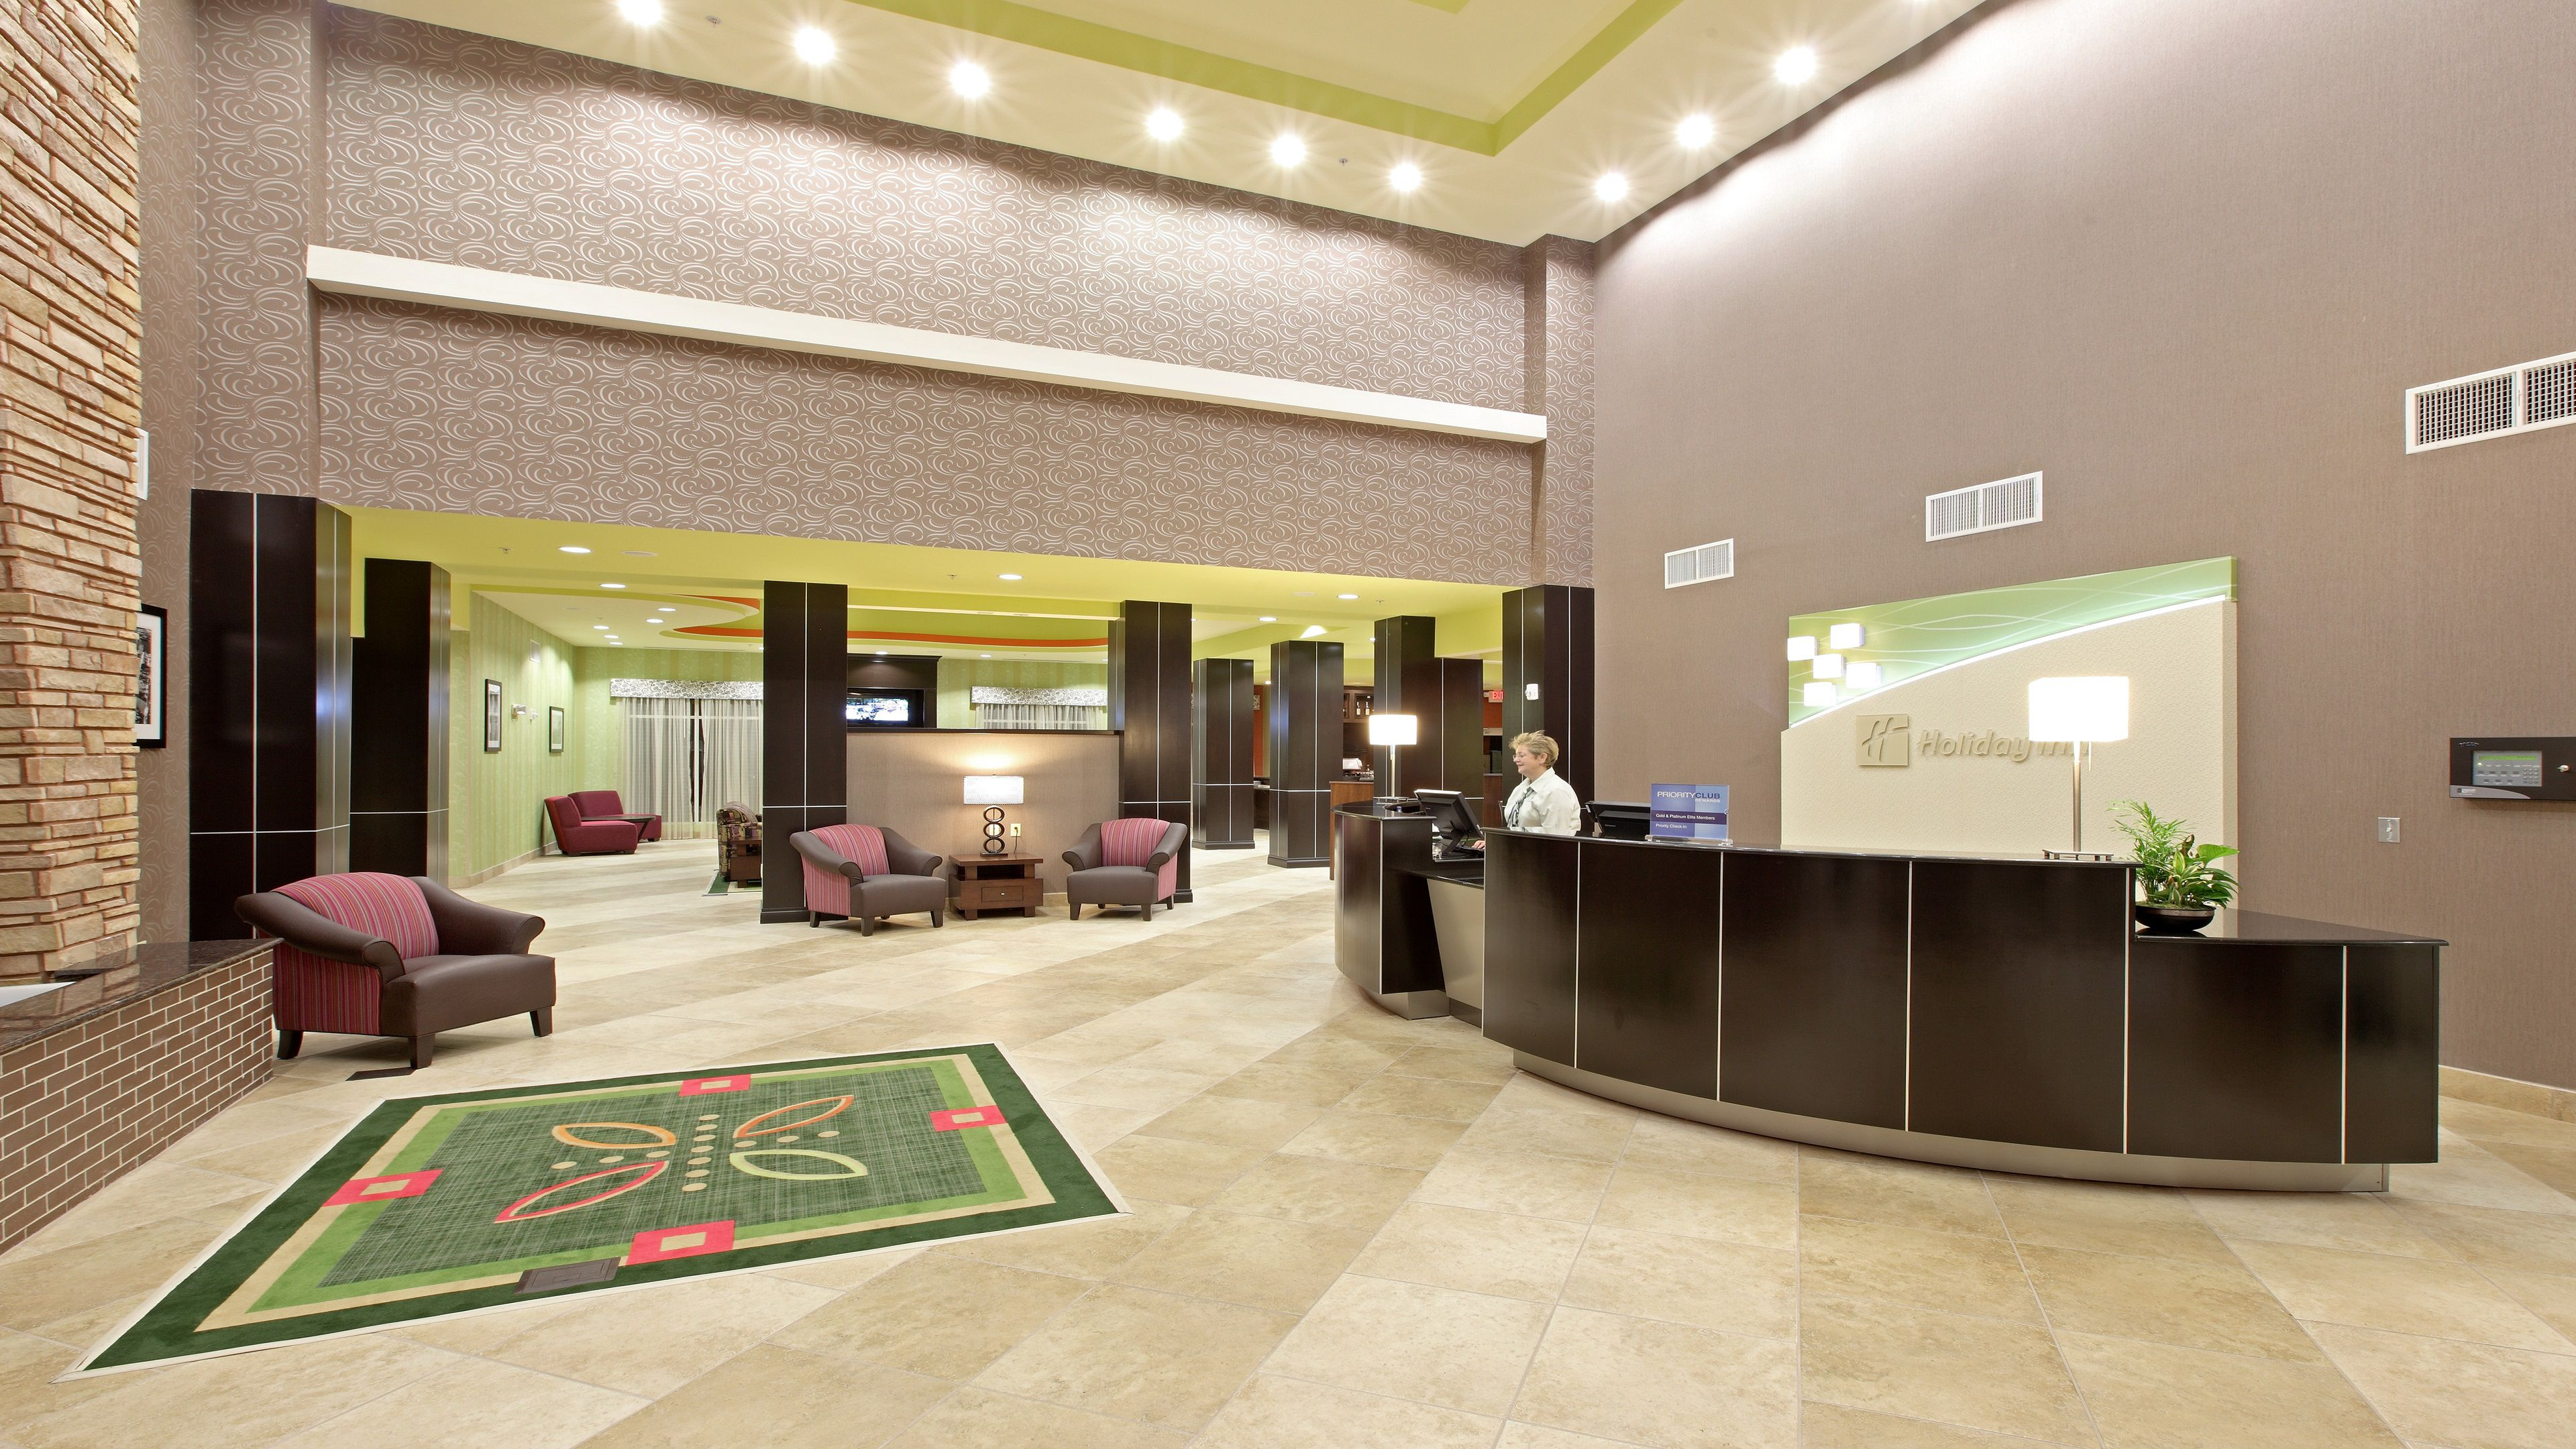 Holiday Inn Dallas - Garland image 6